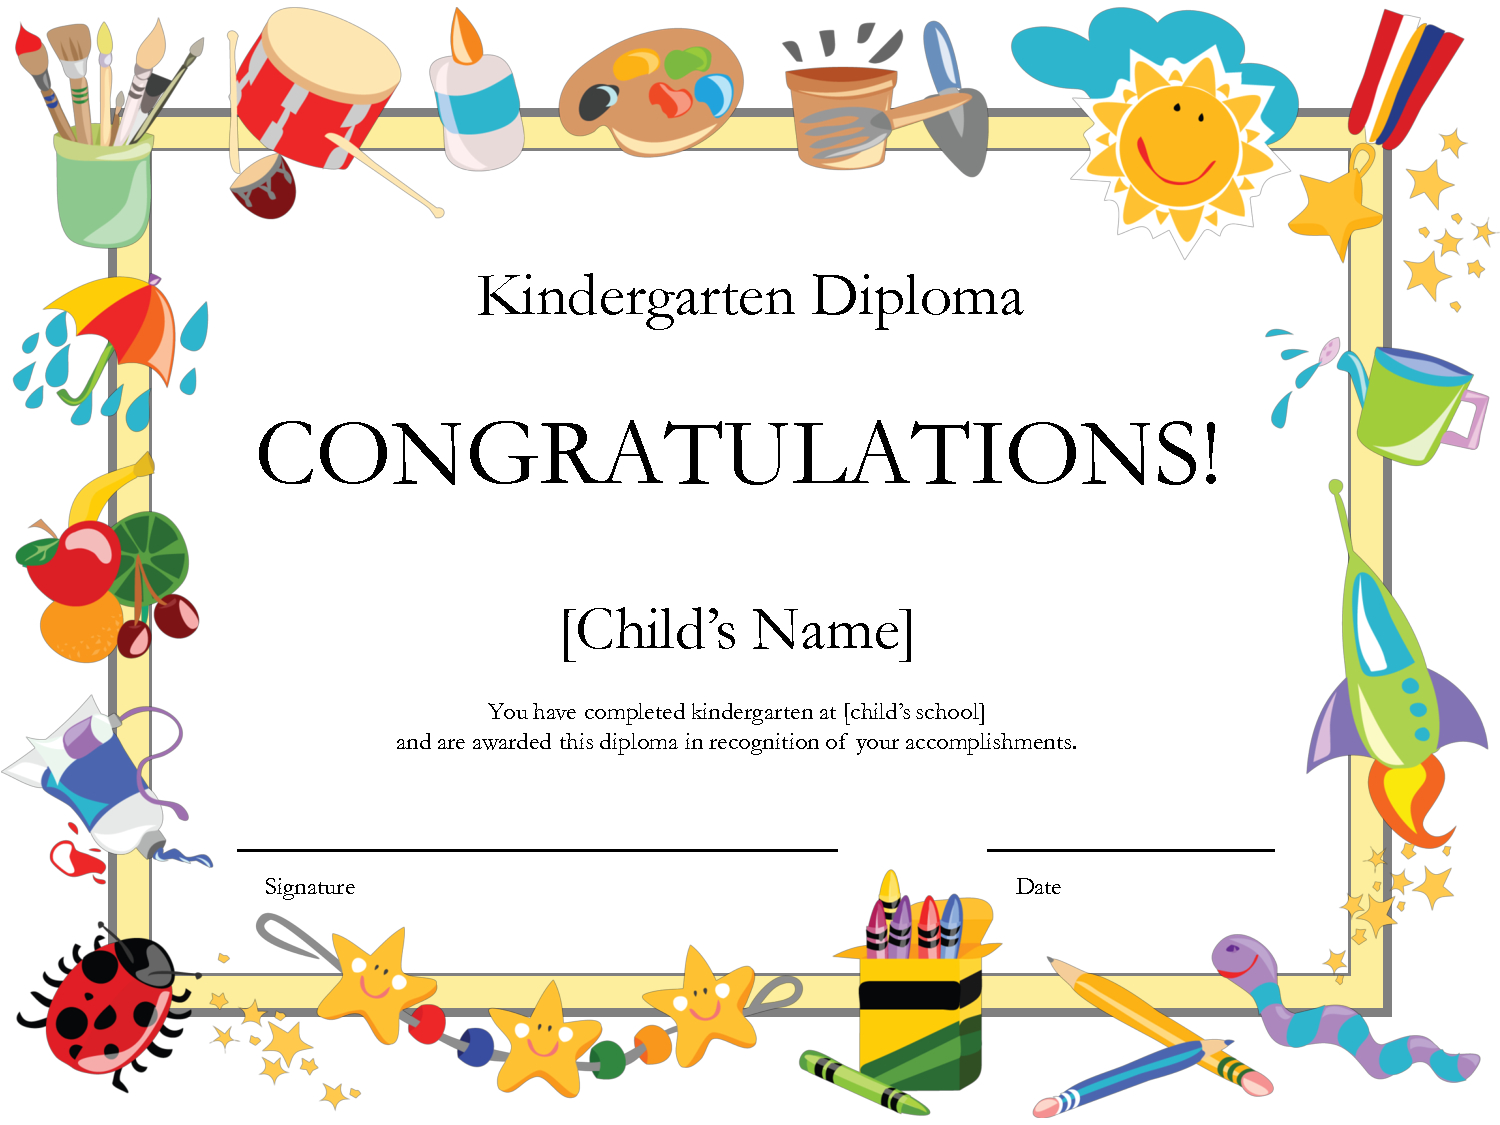 Free Printable Kindergarten Graduation Certificate Template | Umi - Free Printable Children's Certificates Templates